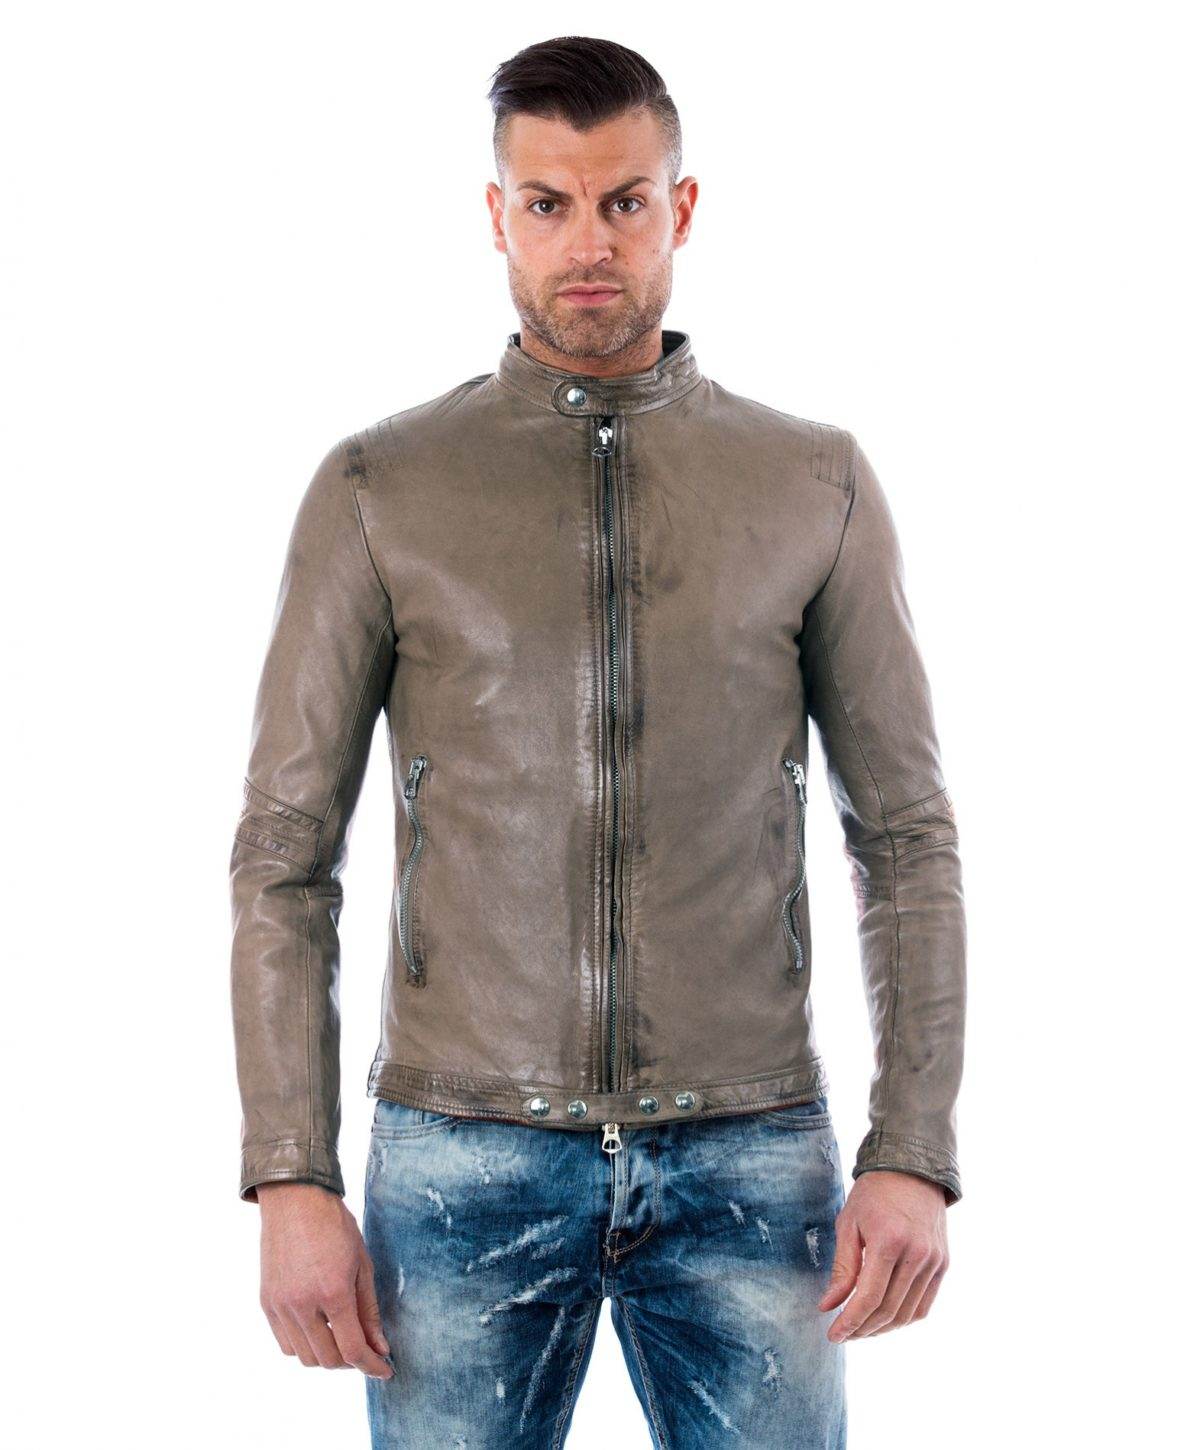 888-grey-vintage-effect-lamb-leather-jacket